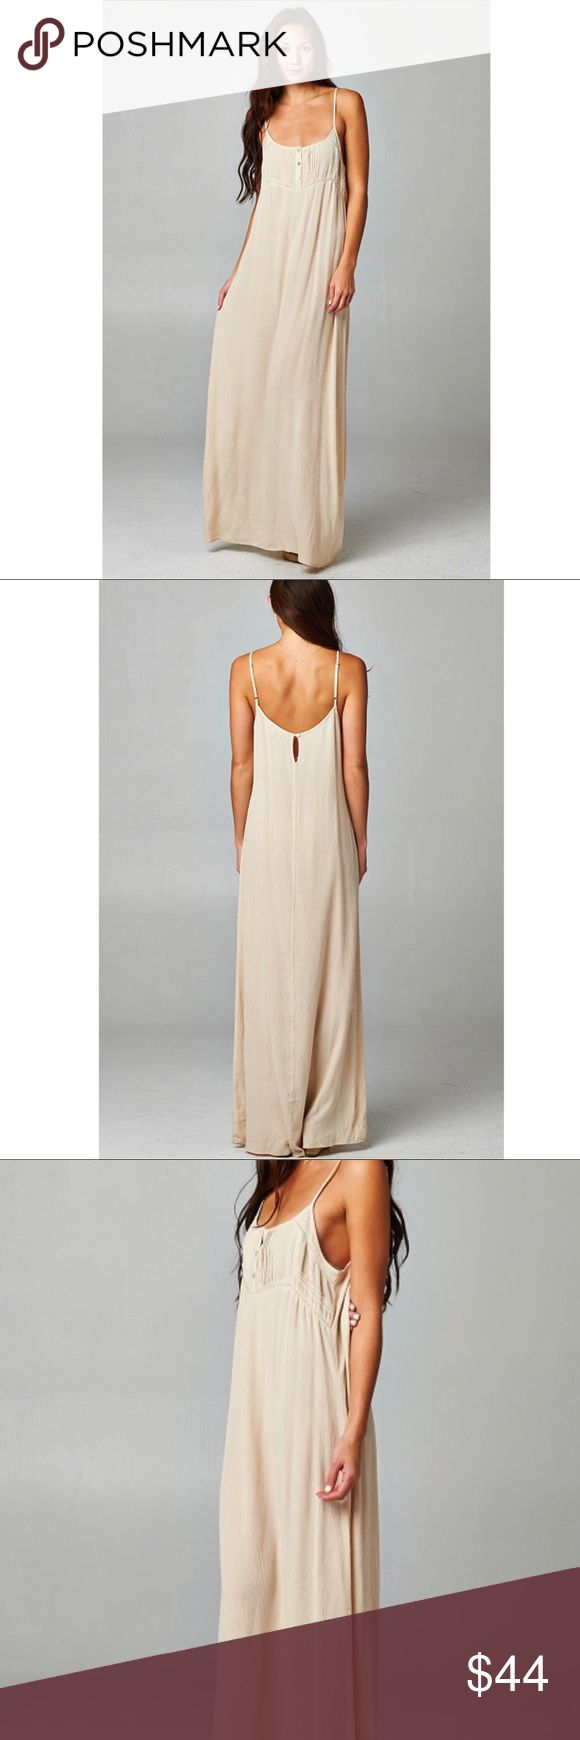 🆕 Gorgeous Beige Maxi Dress from Lovestitch An absolutely stunning dress that is so versatile you can wear it for almost any occasion. You won't regret adding this dress to your wardrobe. Lovestitch Dresses Maxi